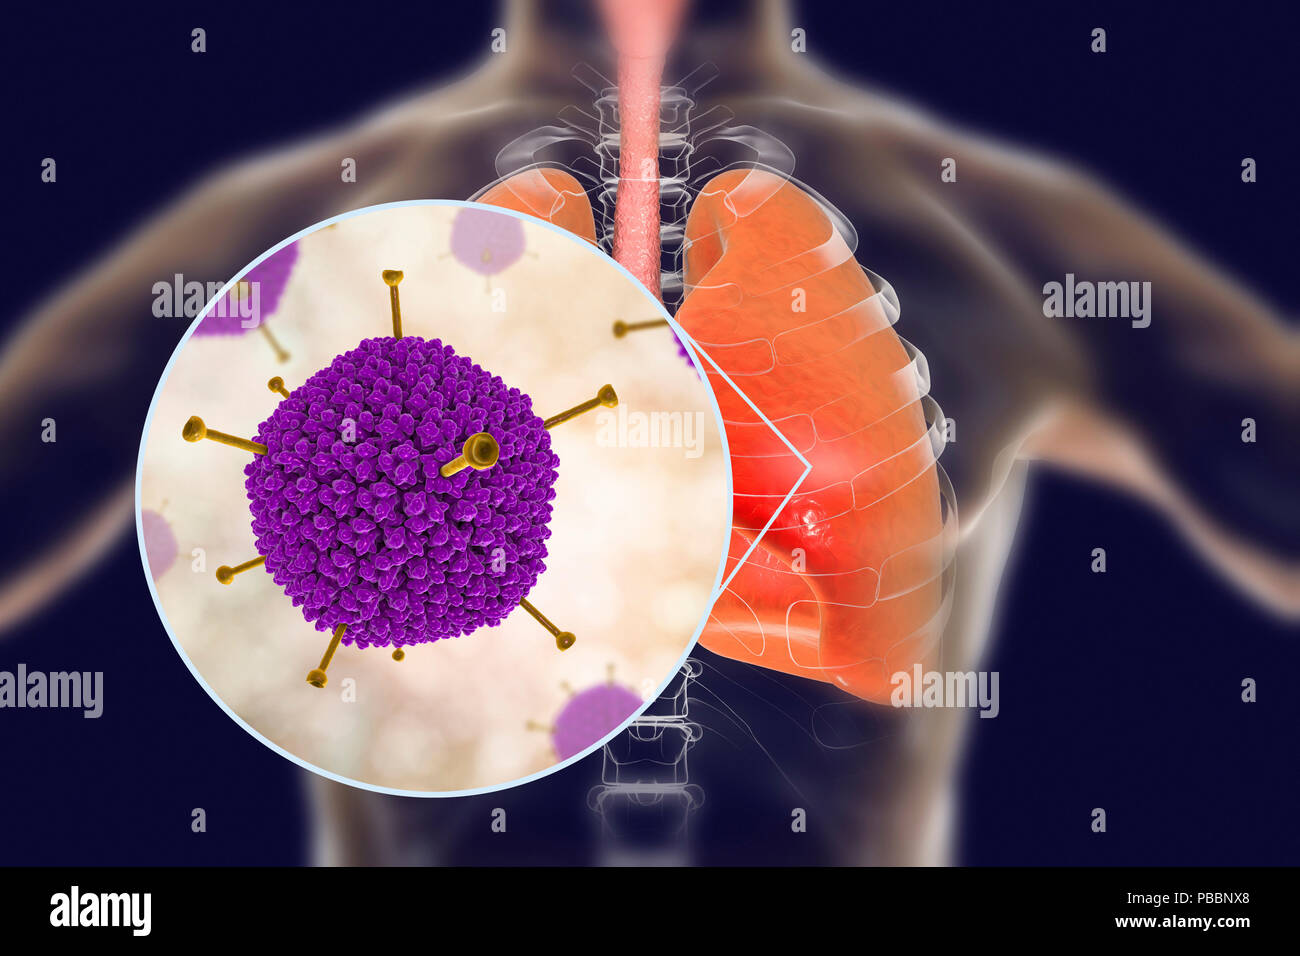 Adenoviruses infecting human lungs, computer illustration. Adenoviruses are DNA-viruses that most commonly infect the upper respiratory tract, eyes and intestine. Occasionally they can cause lower respiratory tract infection (pneumonia), especially in children and immunocompromised patients. - Stock Image